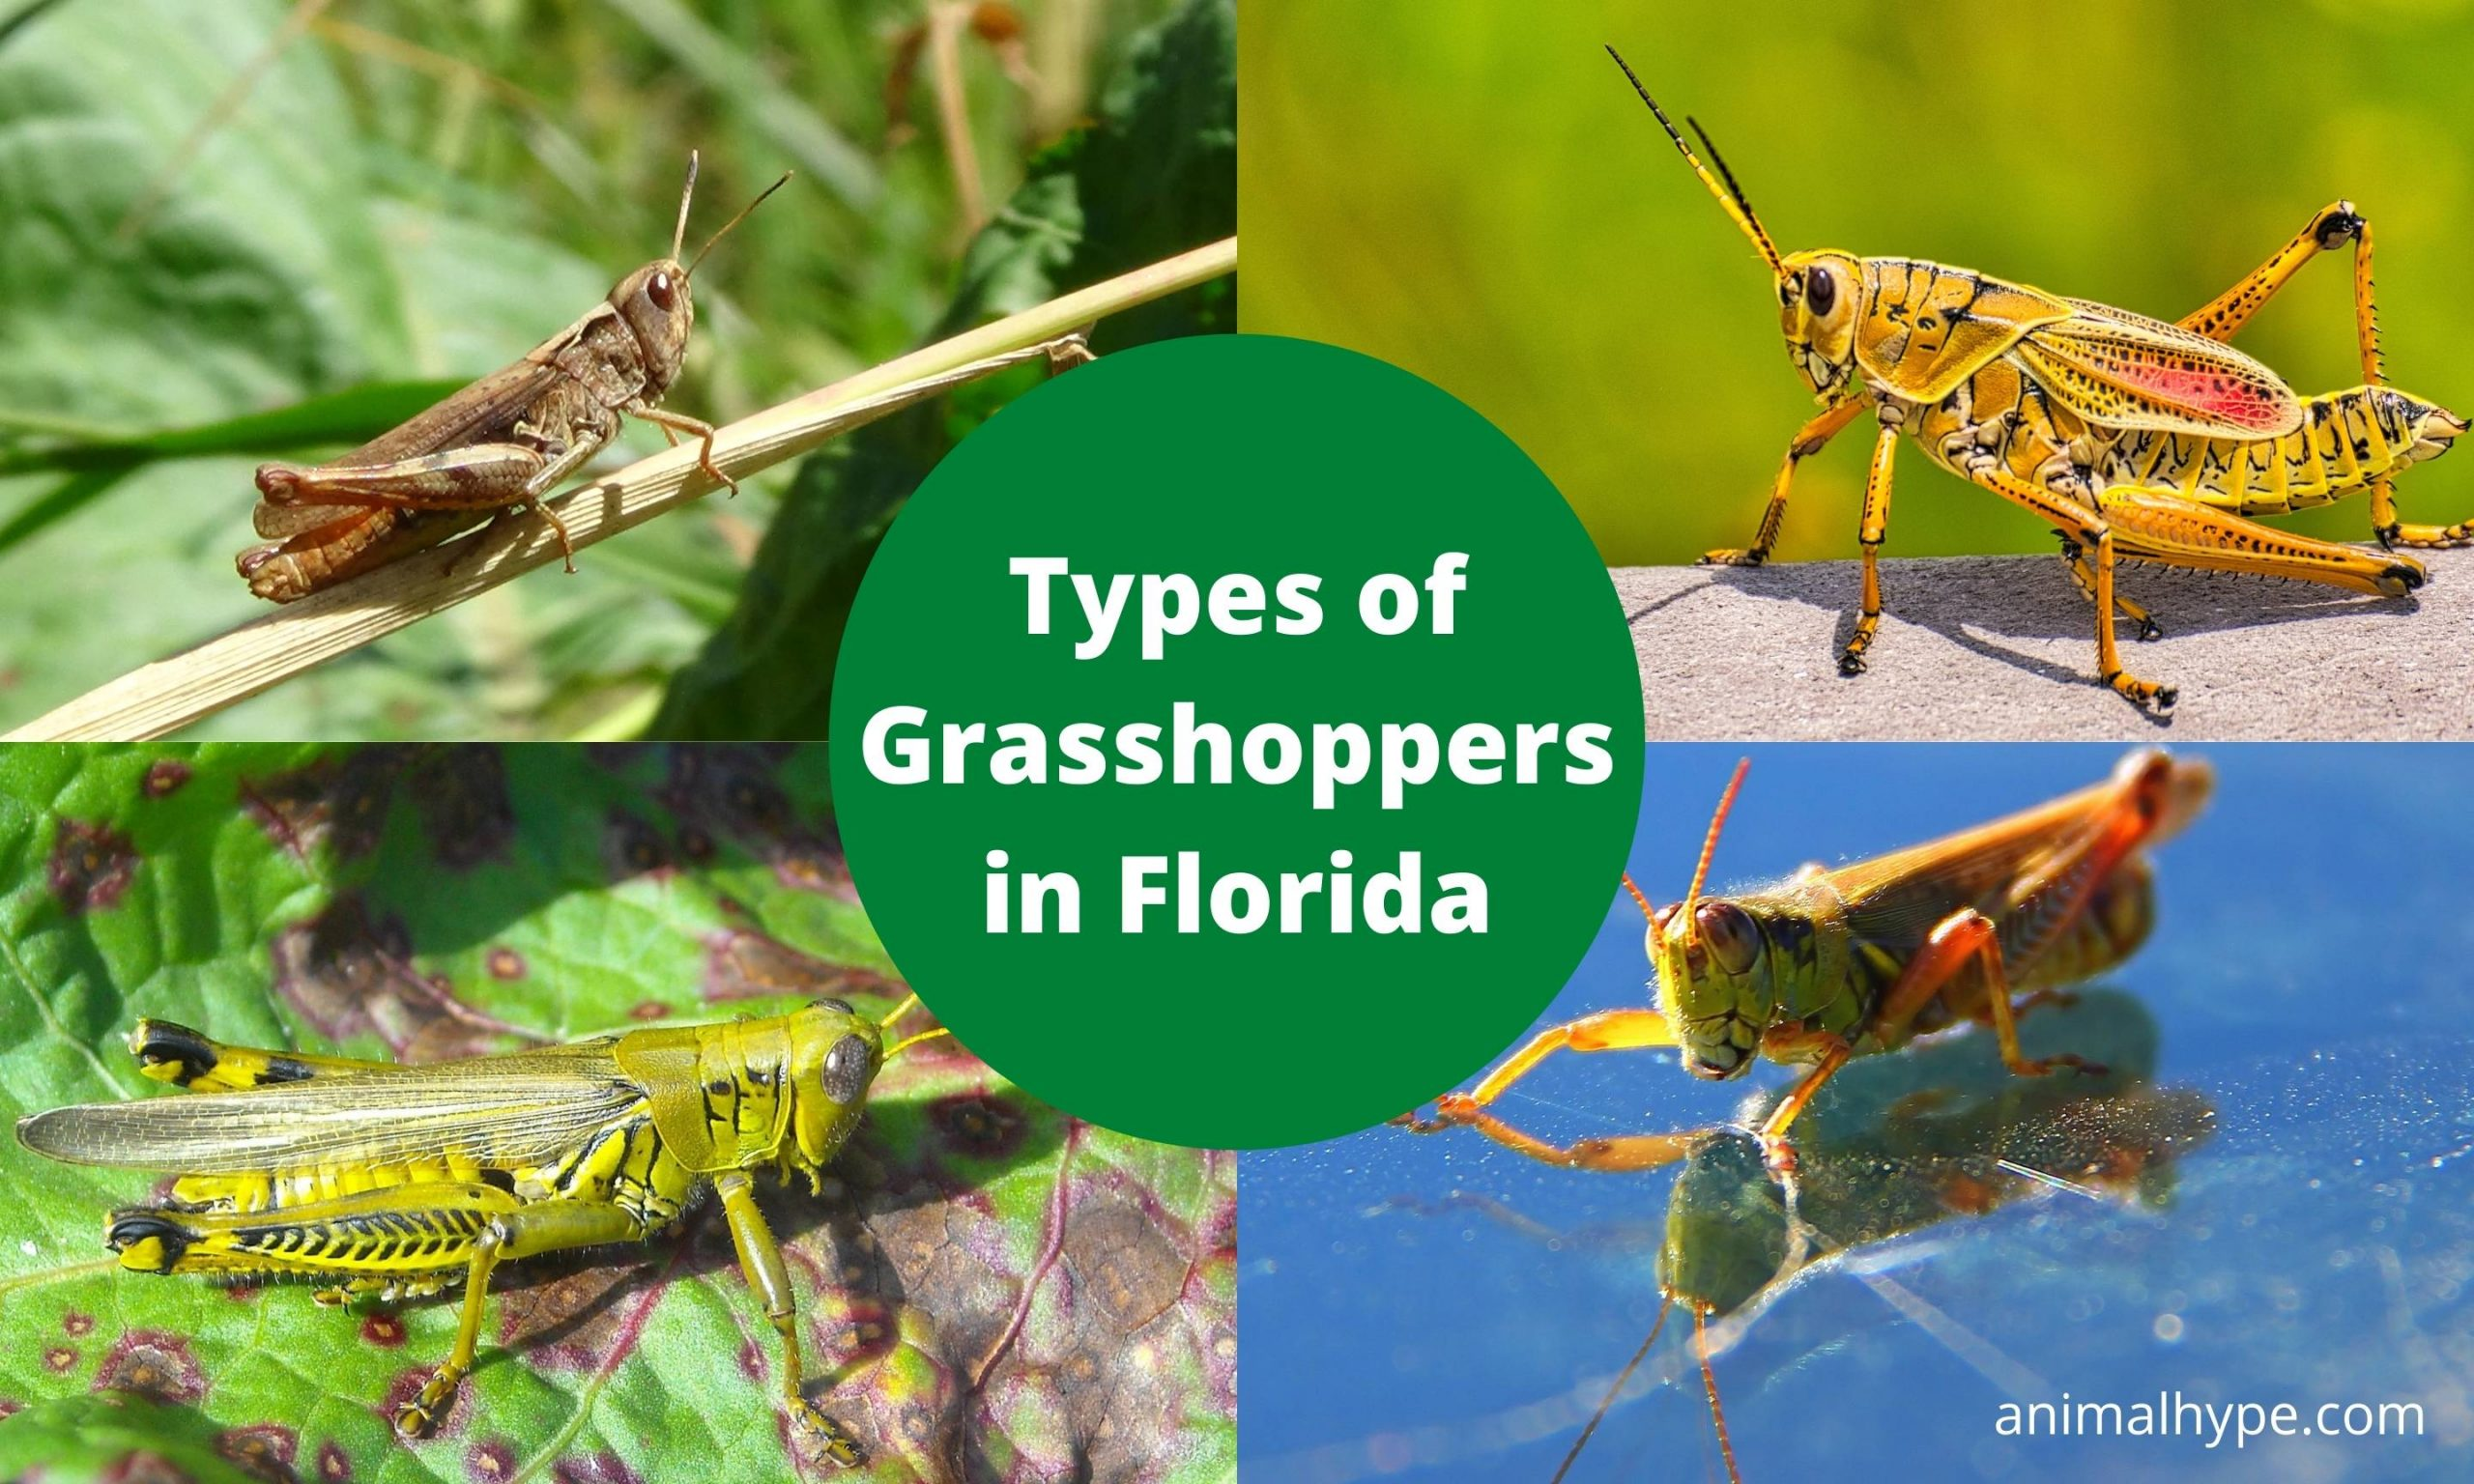 Grasshoppers in Florida